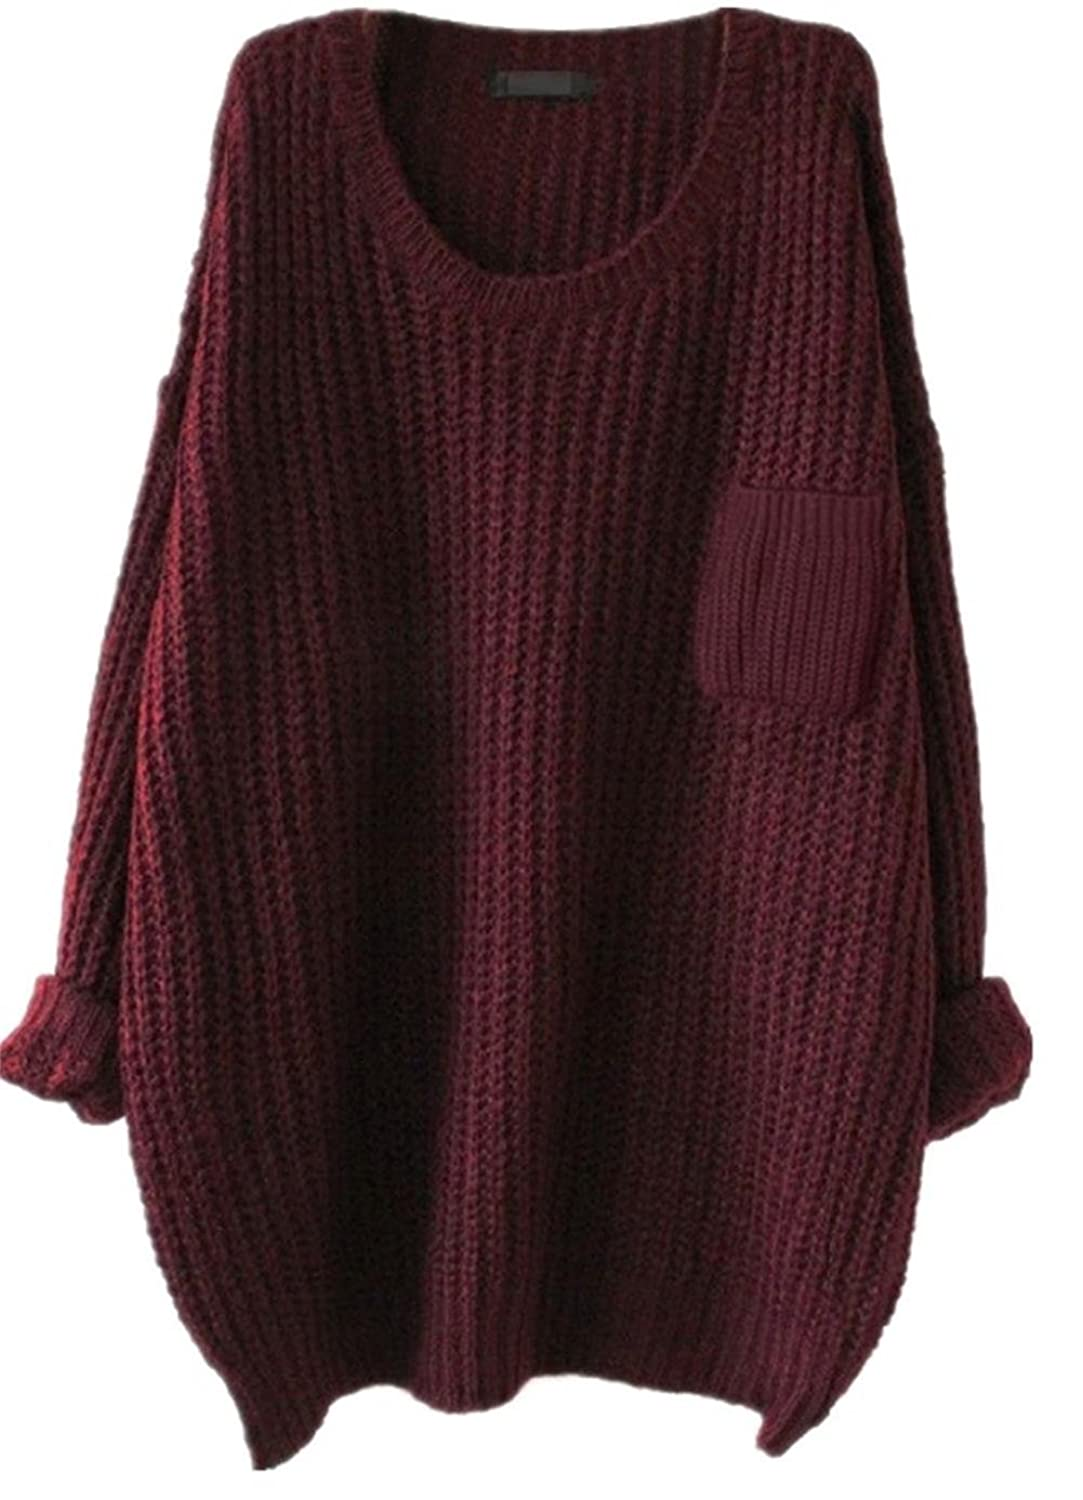 Women's Casual Unbalanced Crew Neck Knit Sweater Loose Pullover ...